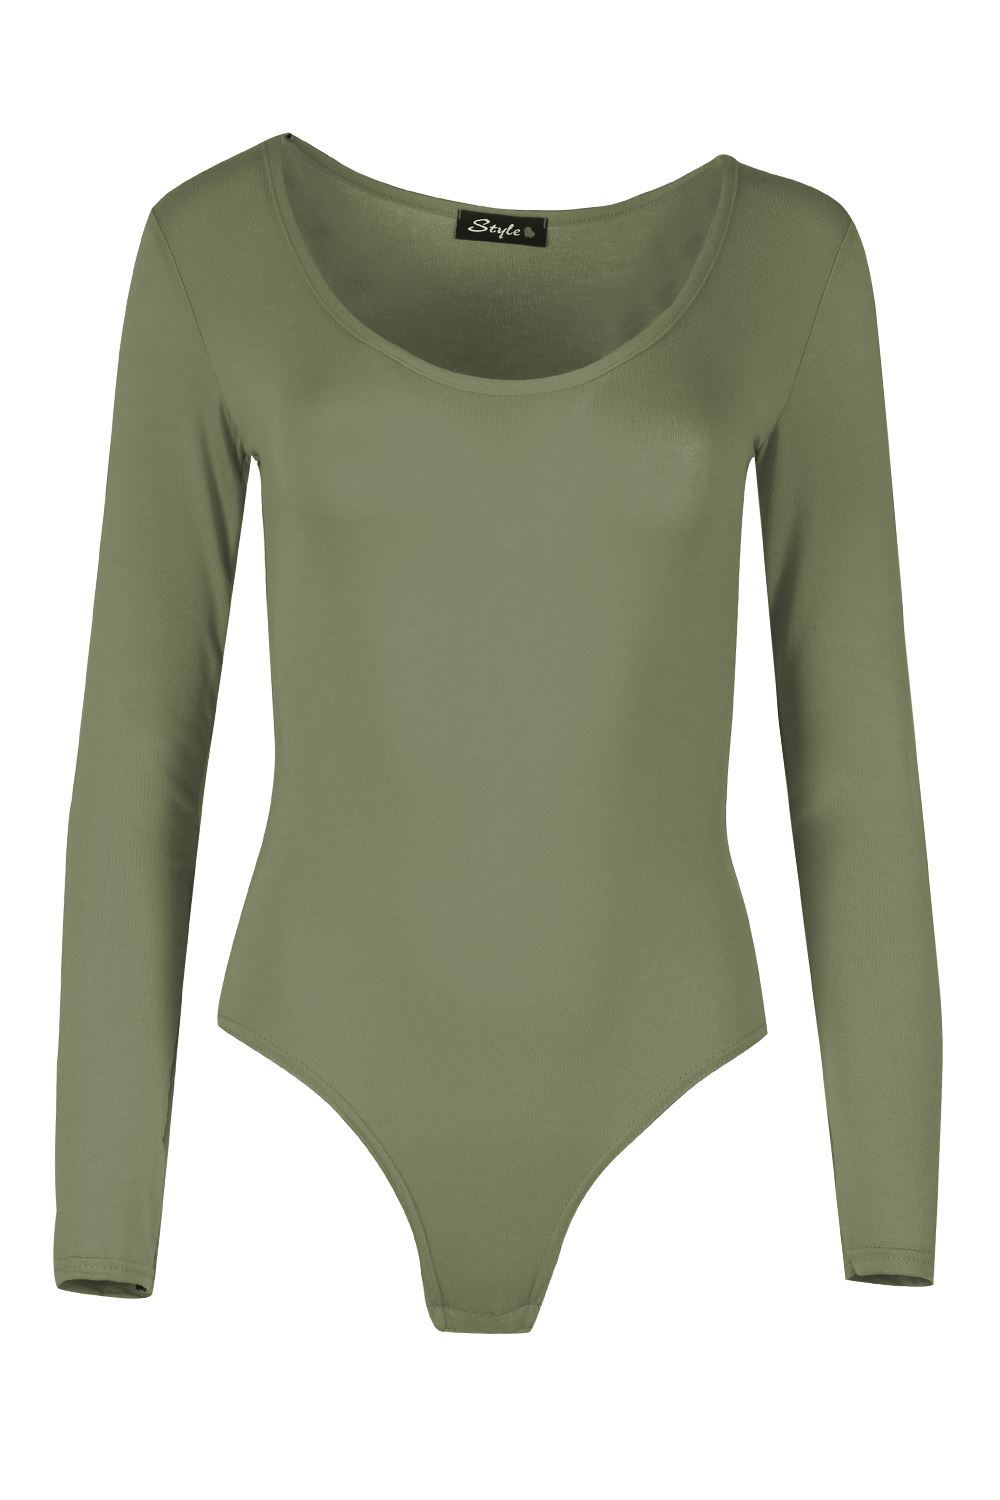 e8cce541e4 Womens Plain Long Sleeves Plain Jersey Leotard Ladies Round Neck ...